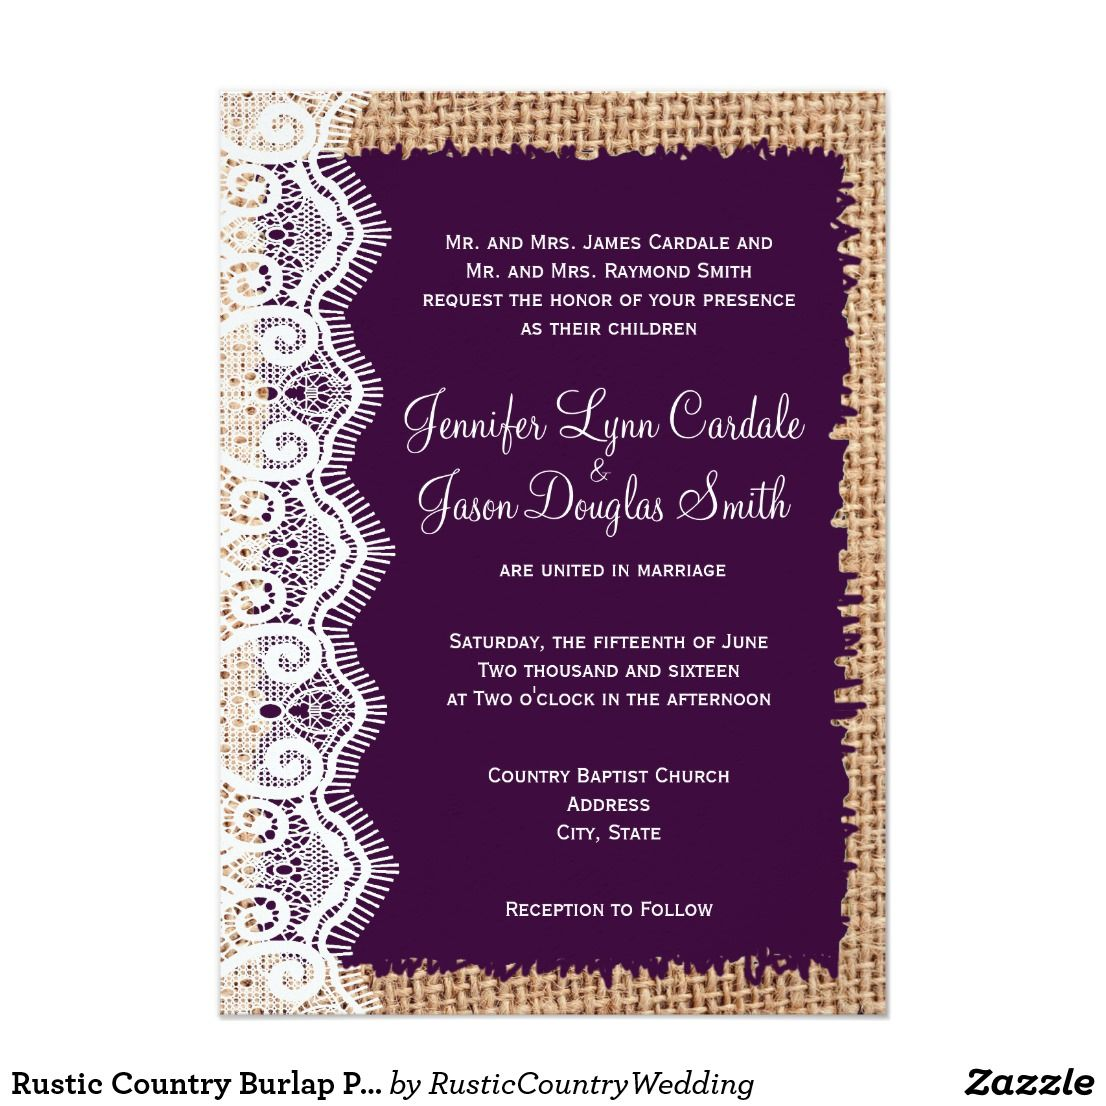 Rustic Country Burlap Purple Wedding Invitations Zazzle Com My